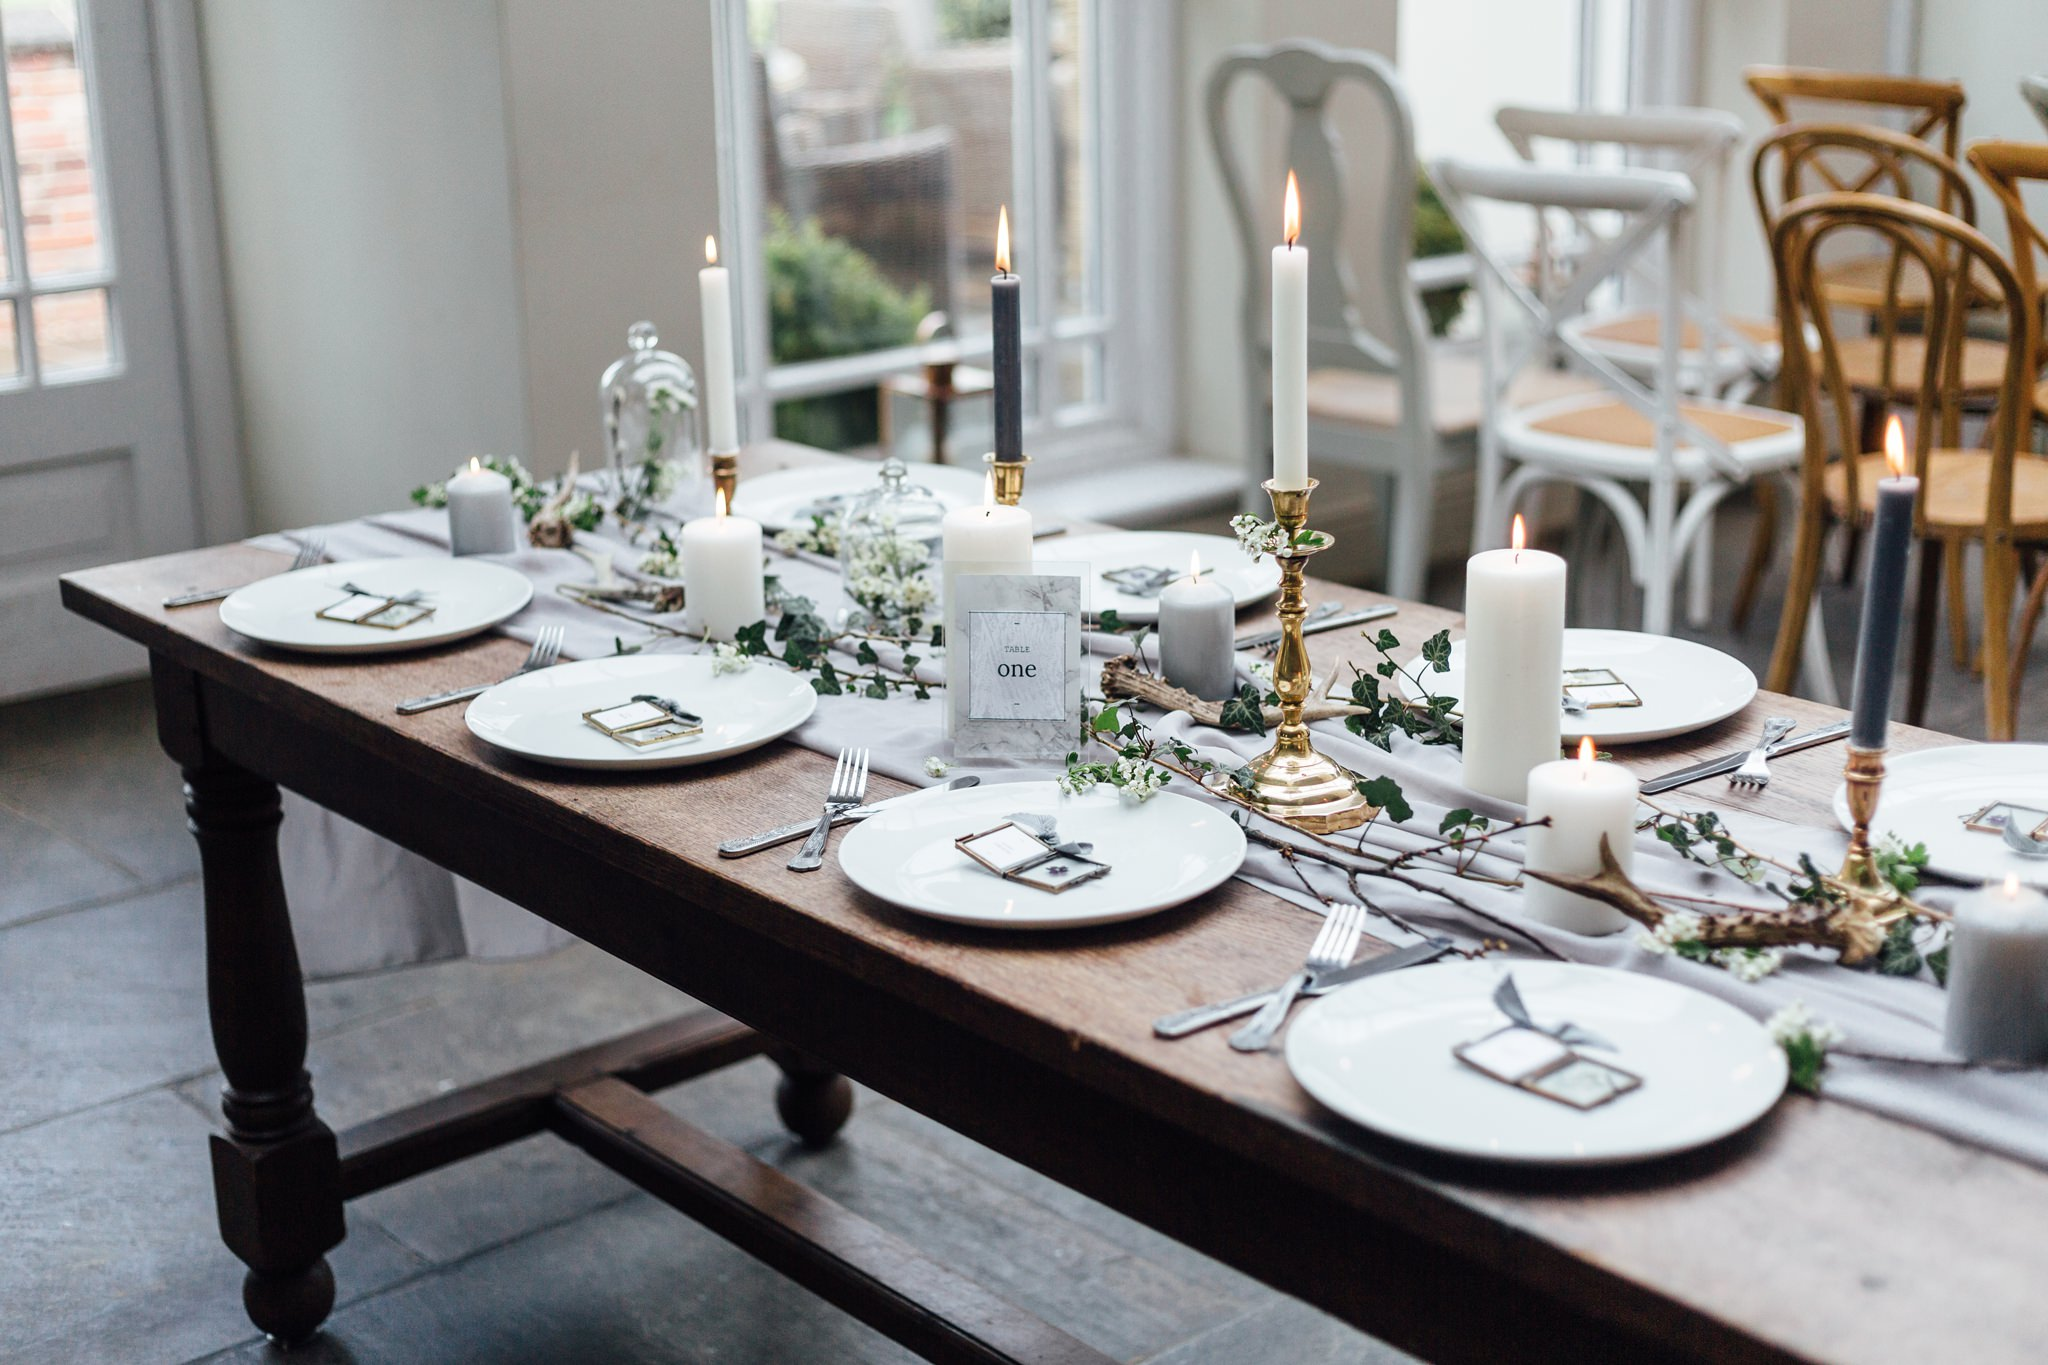 Woodland Romance - Modern Country Styling At Kedleston Country House